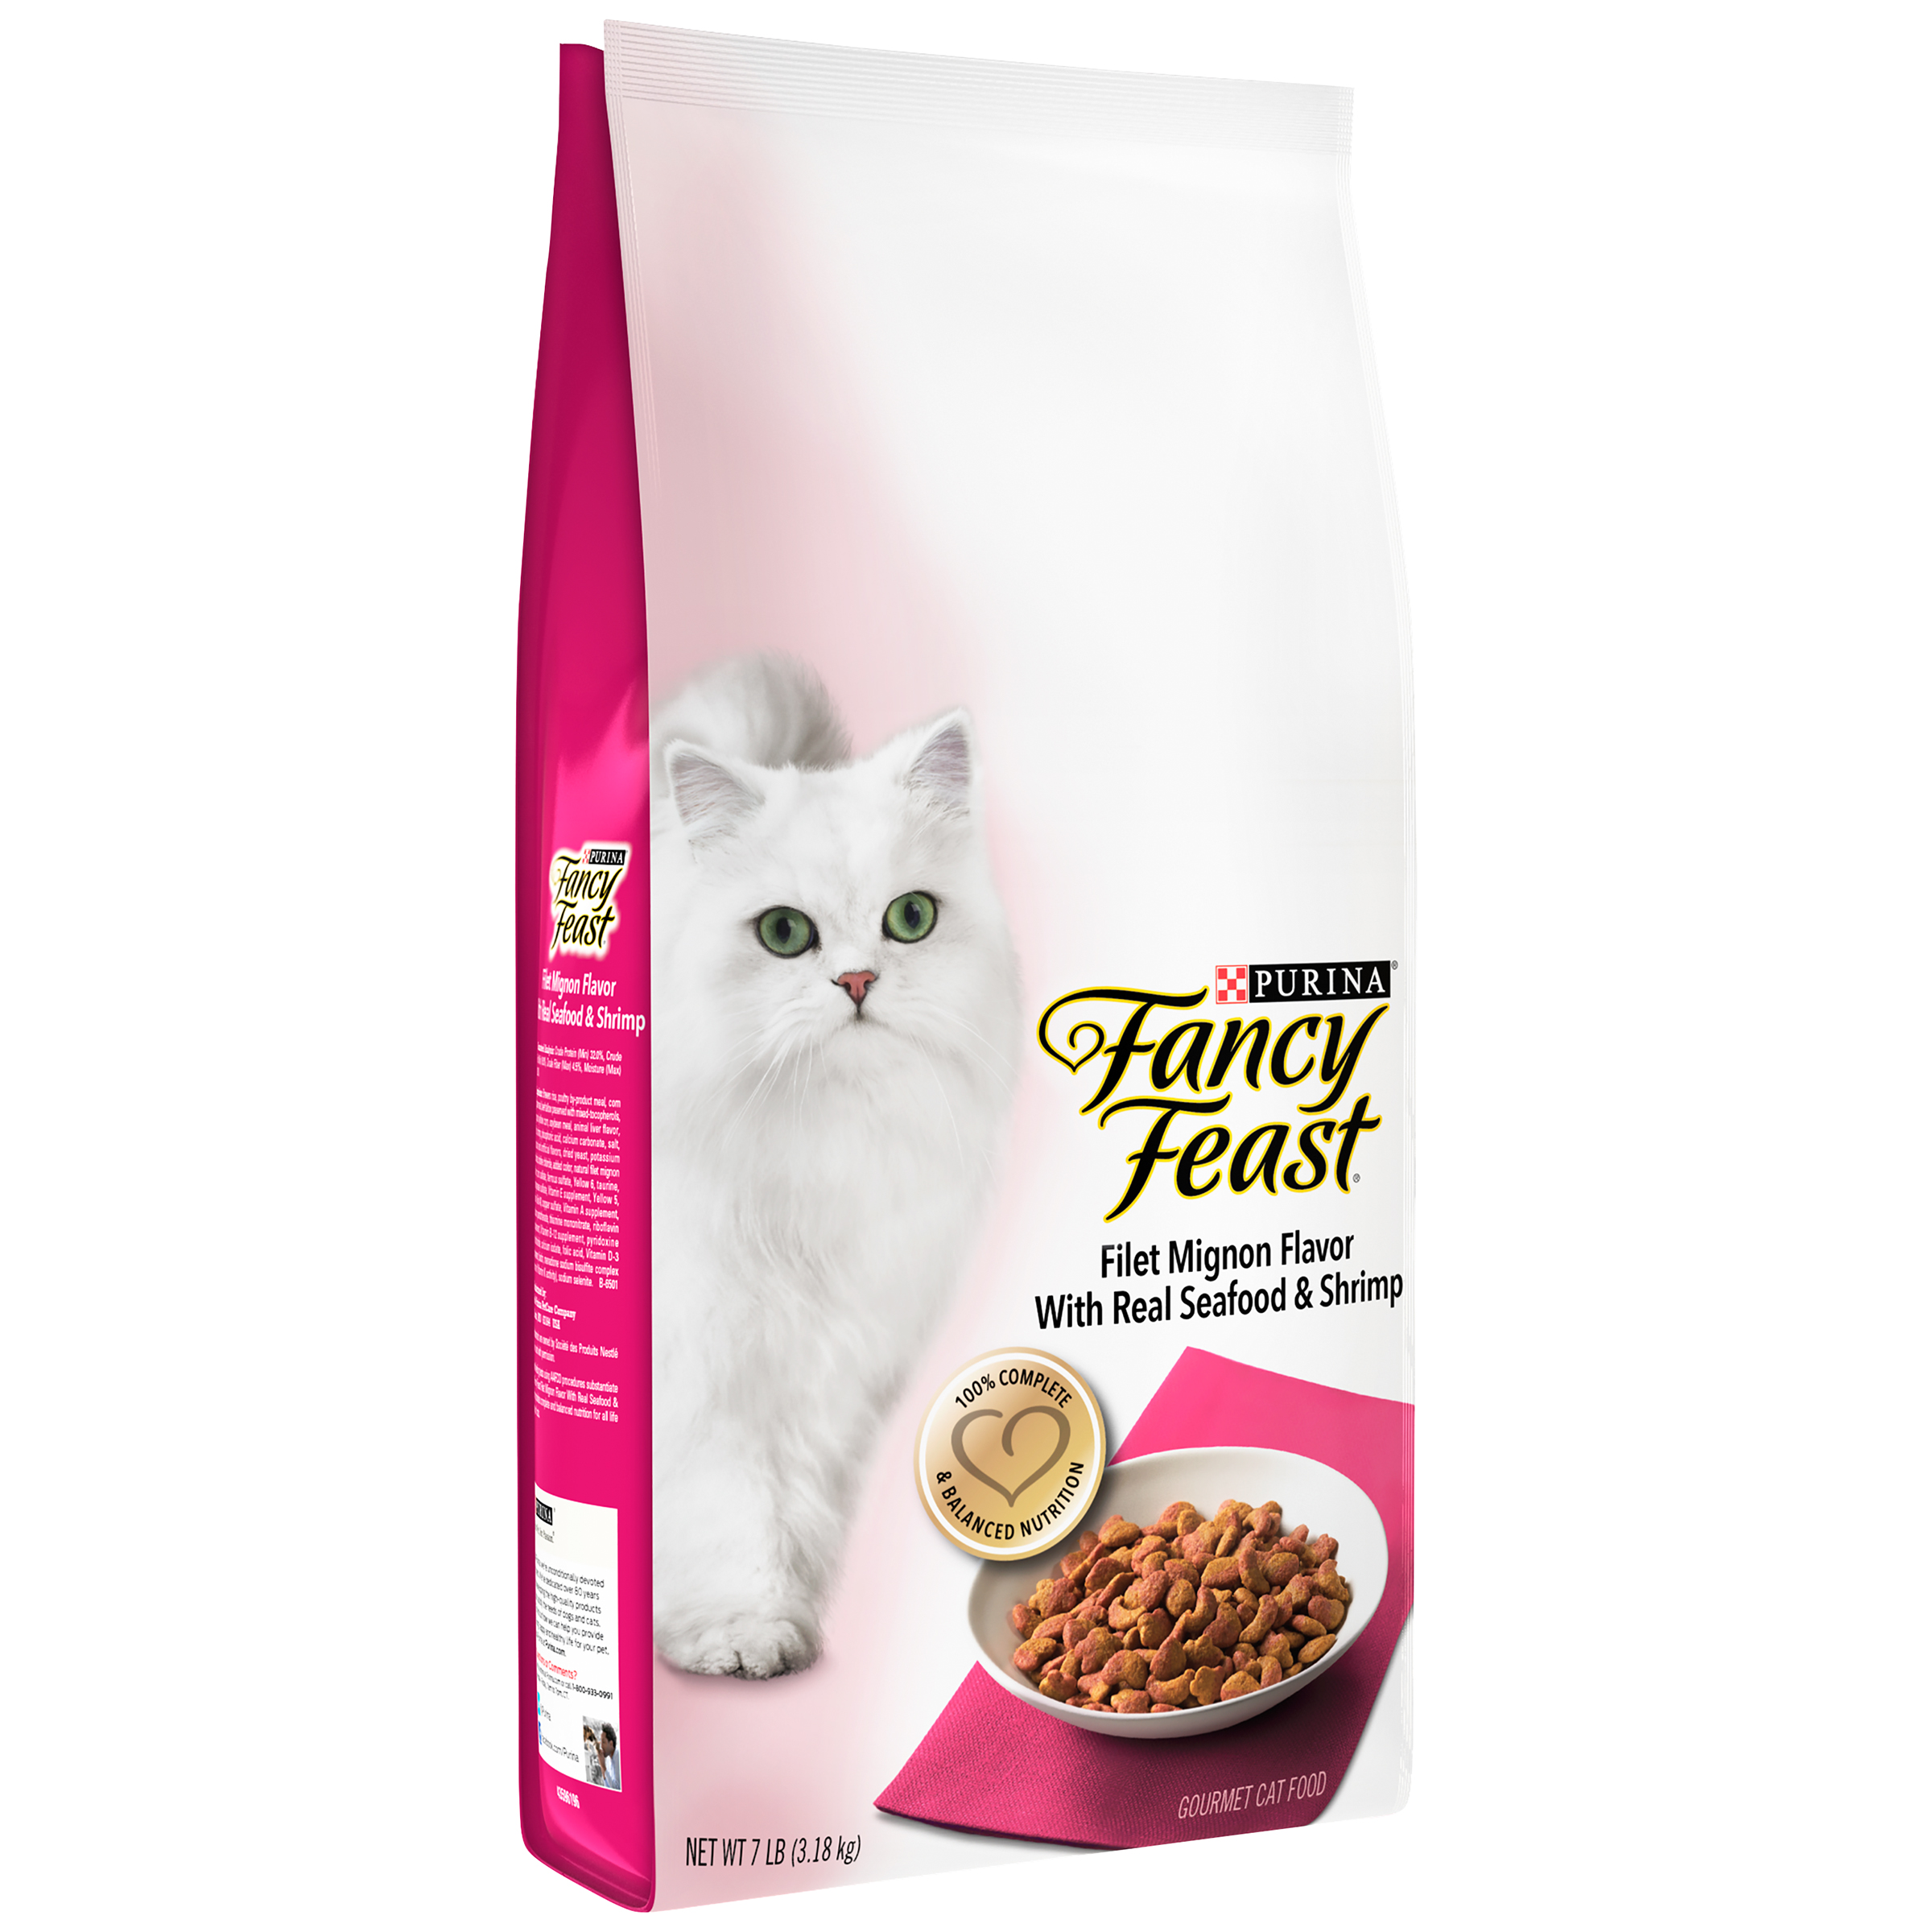 Purina Fancy Feast Filet Mignon Flavor with Real Seafood & Shrimp Cat Food 7 lb. Bag